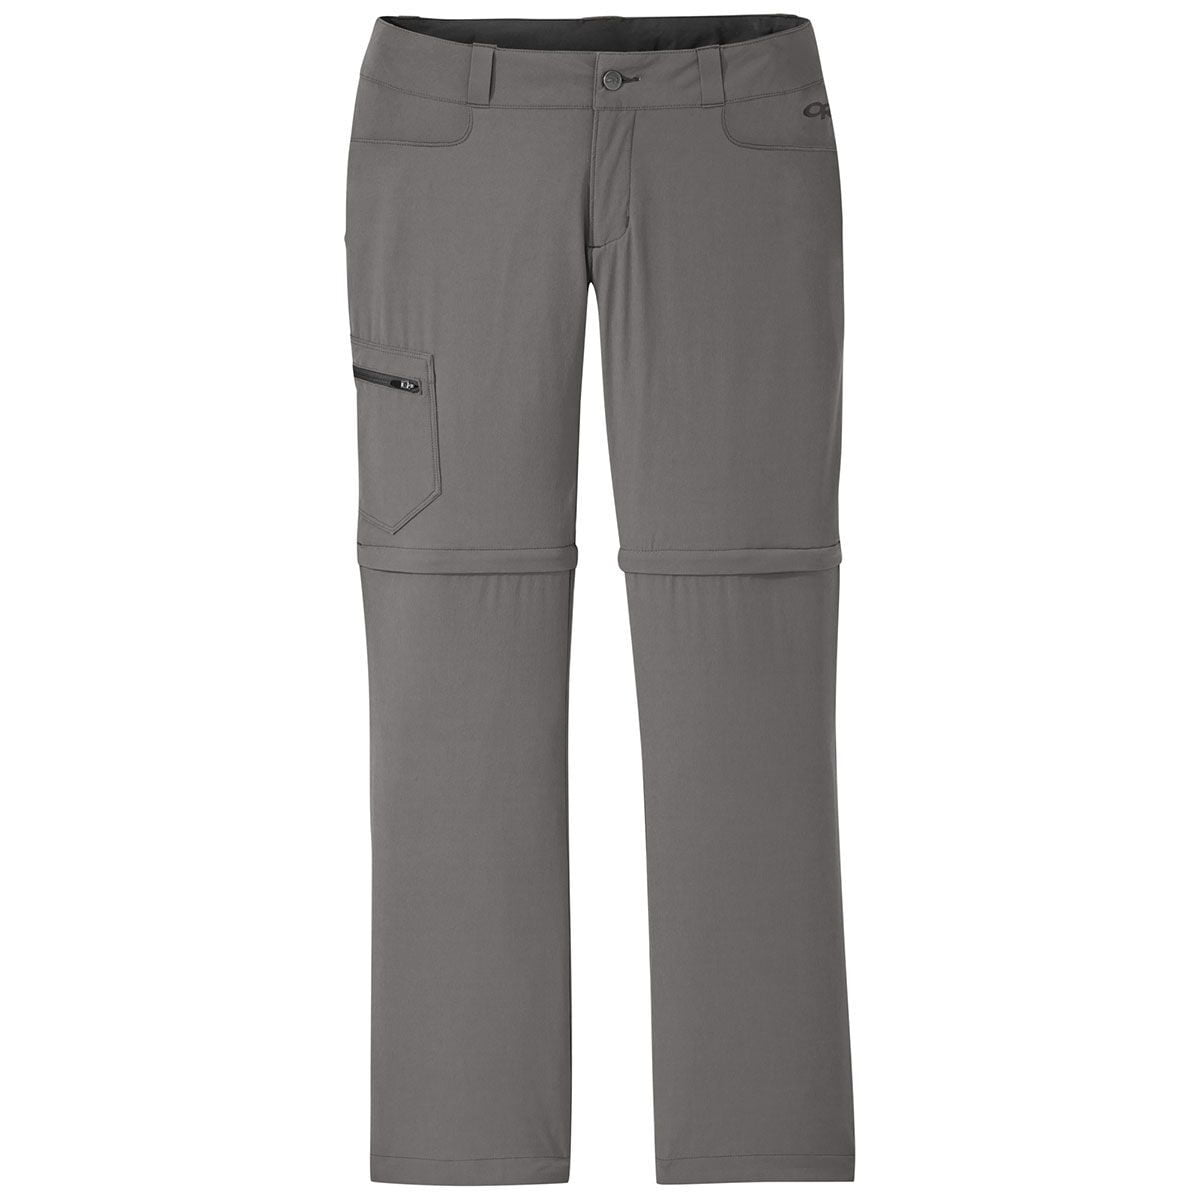 Outdoor Research Ferrosi Convertible Pants - Women's